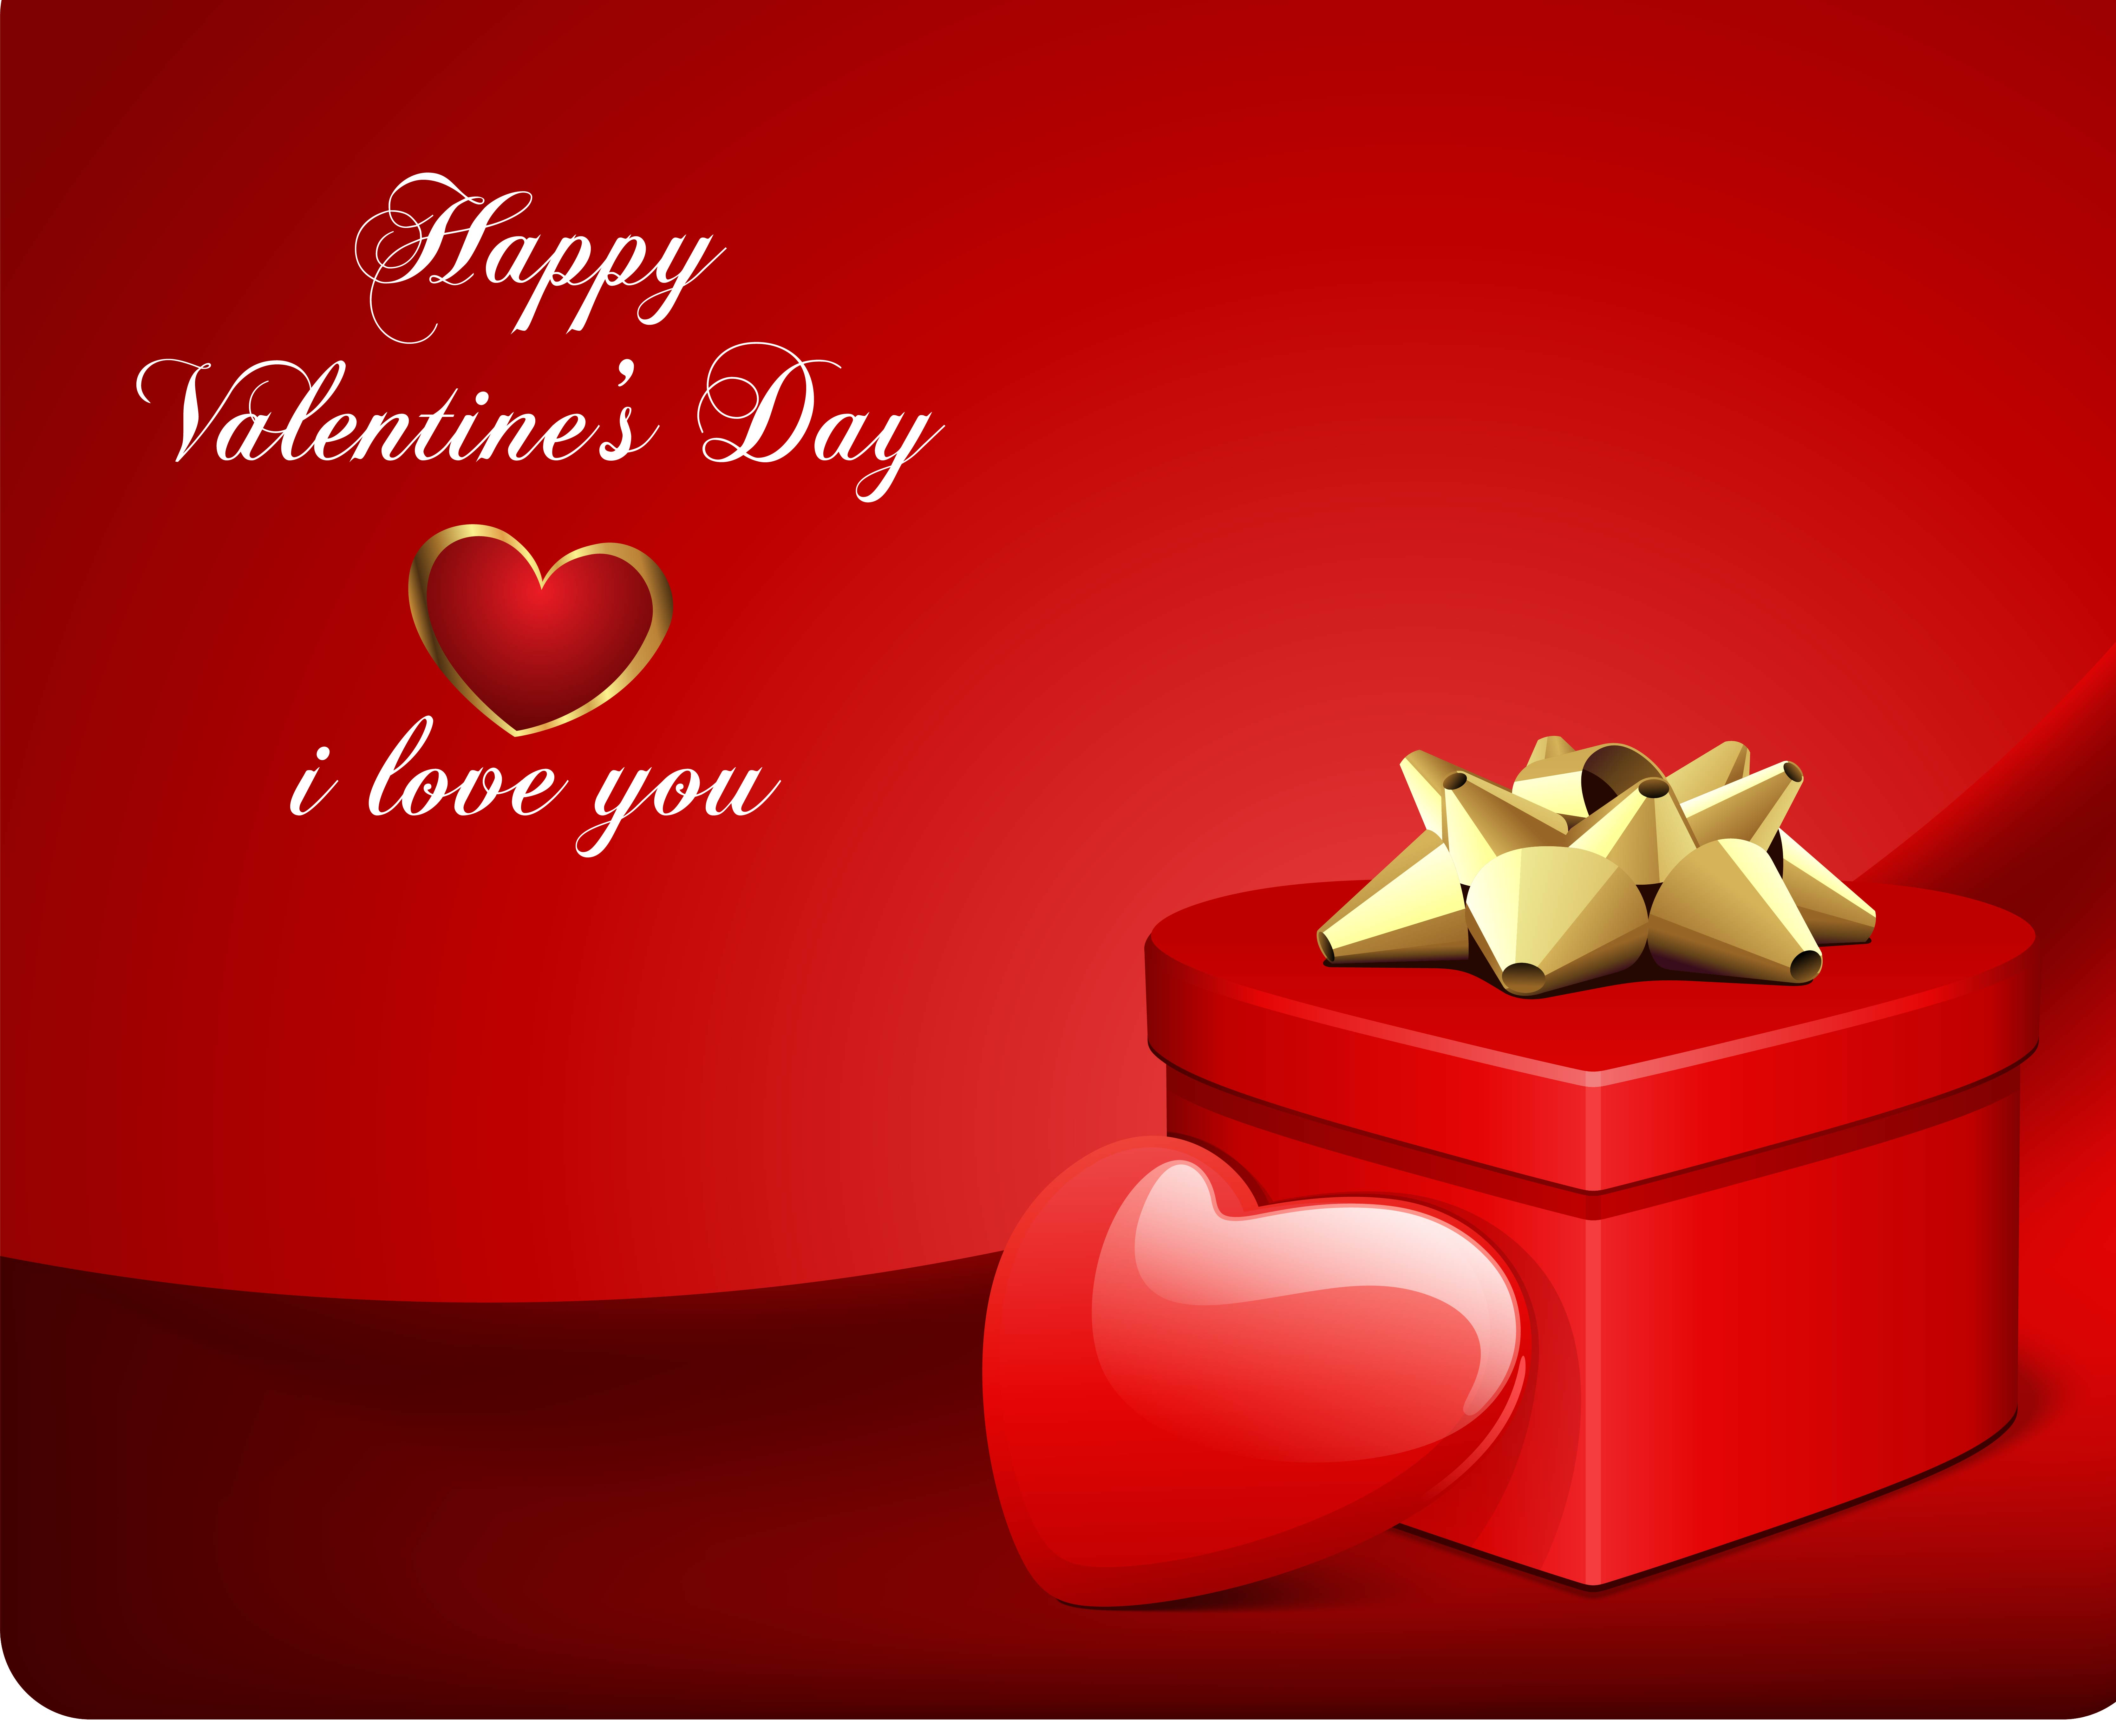 orst valentines day cards - 766×638